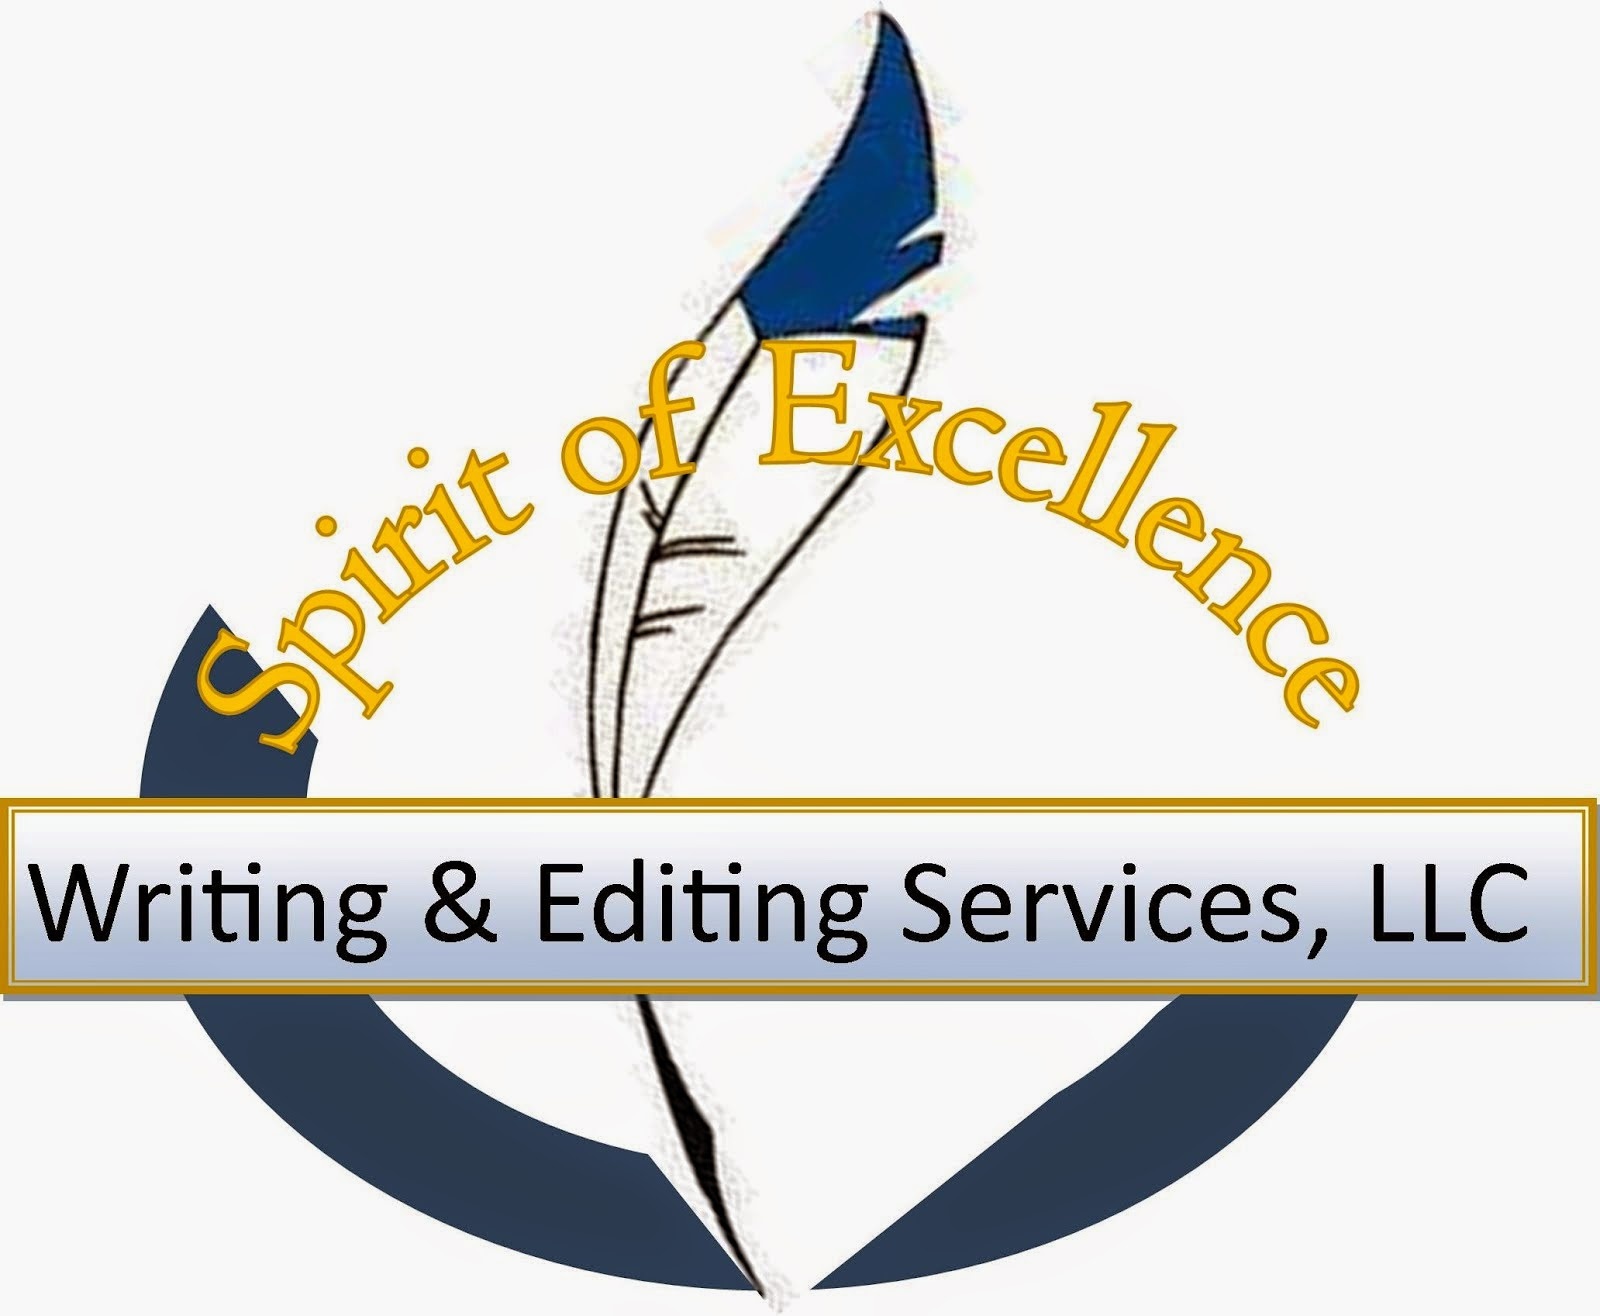 Spirit of Excellence Writing & Editing Services, LLC